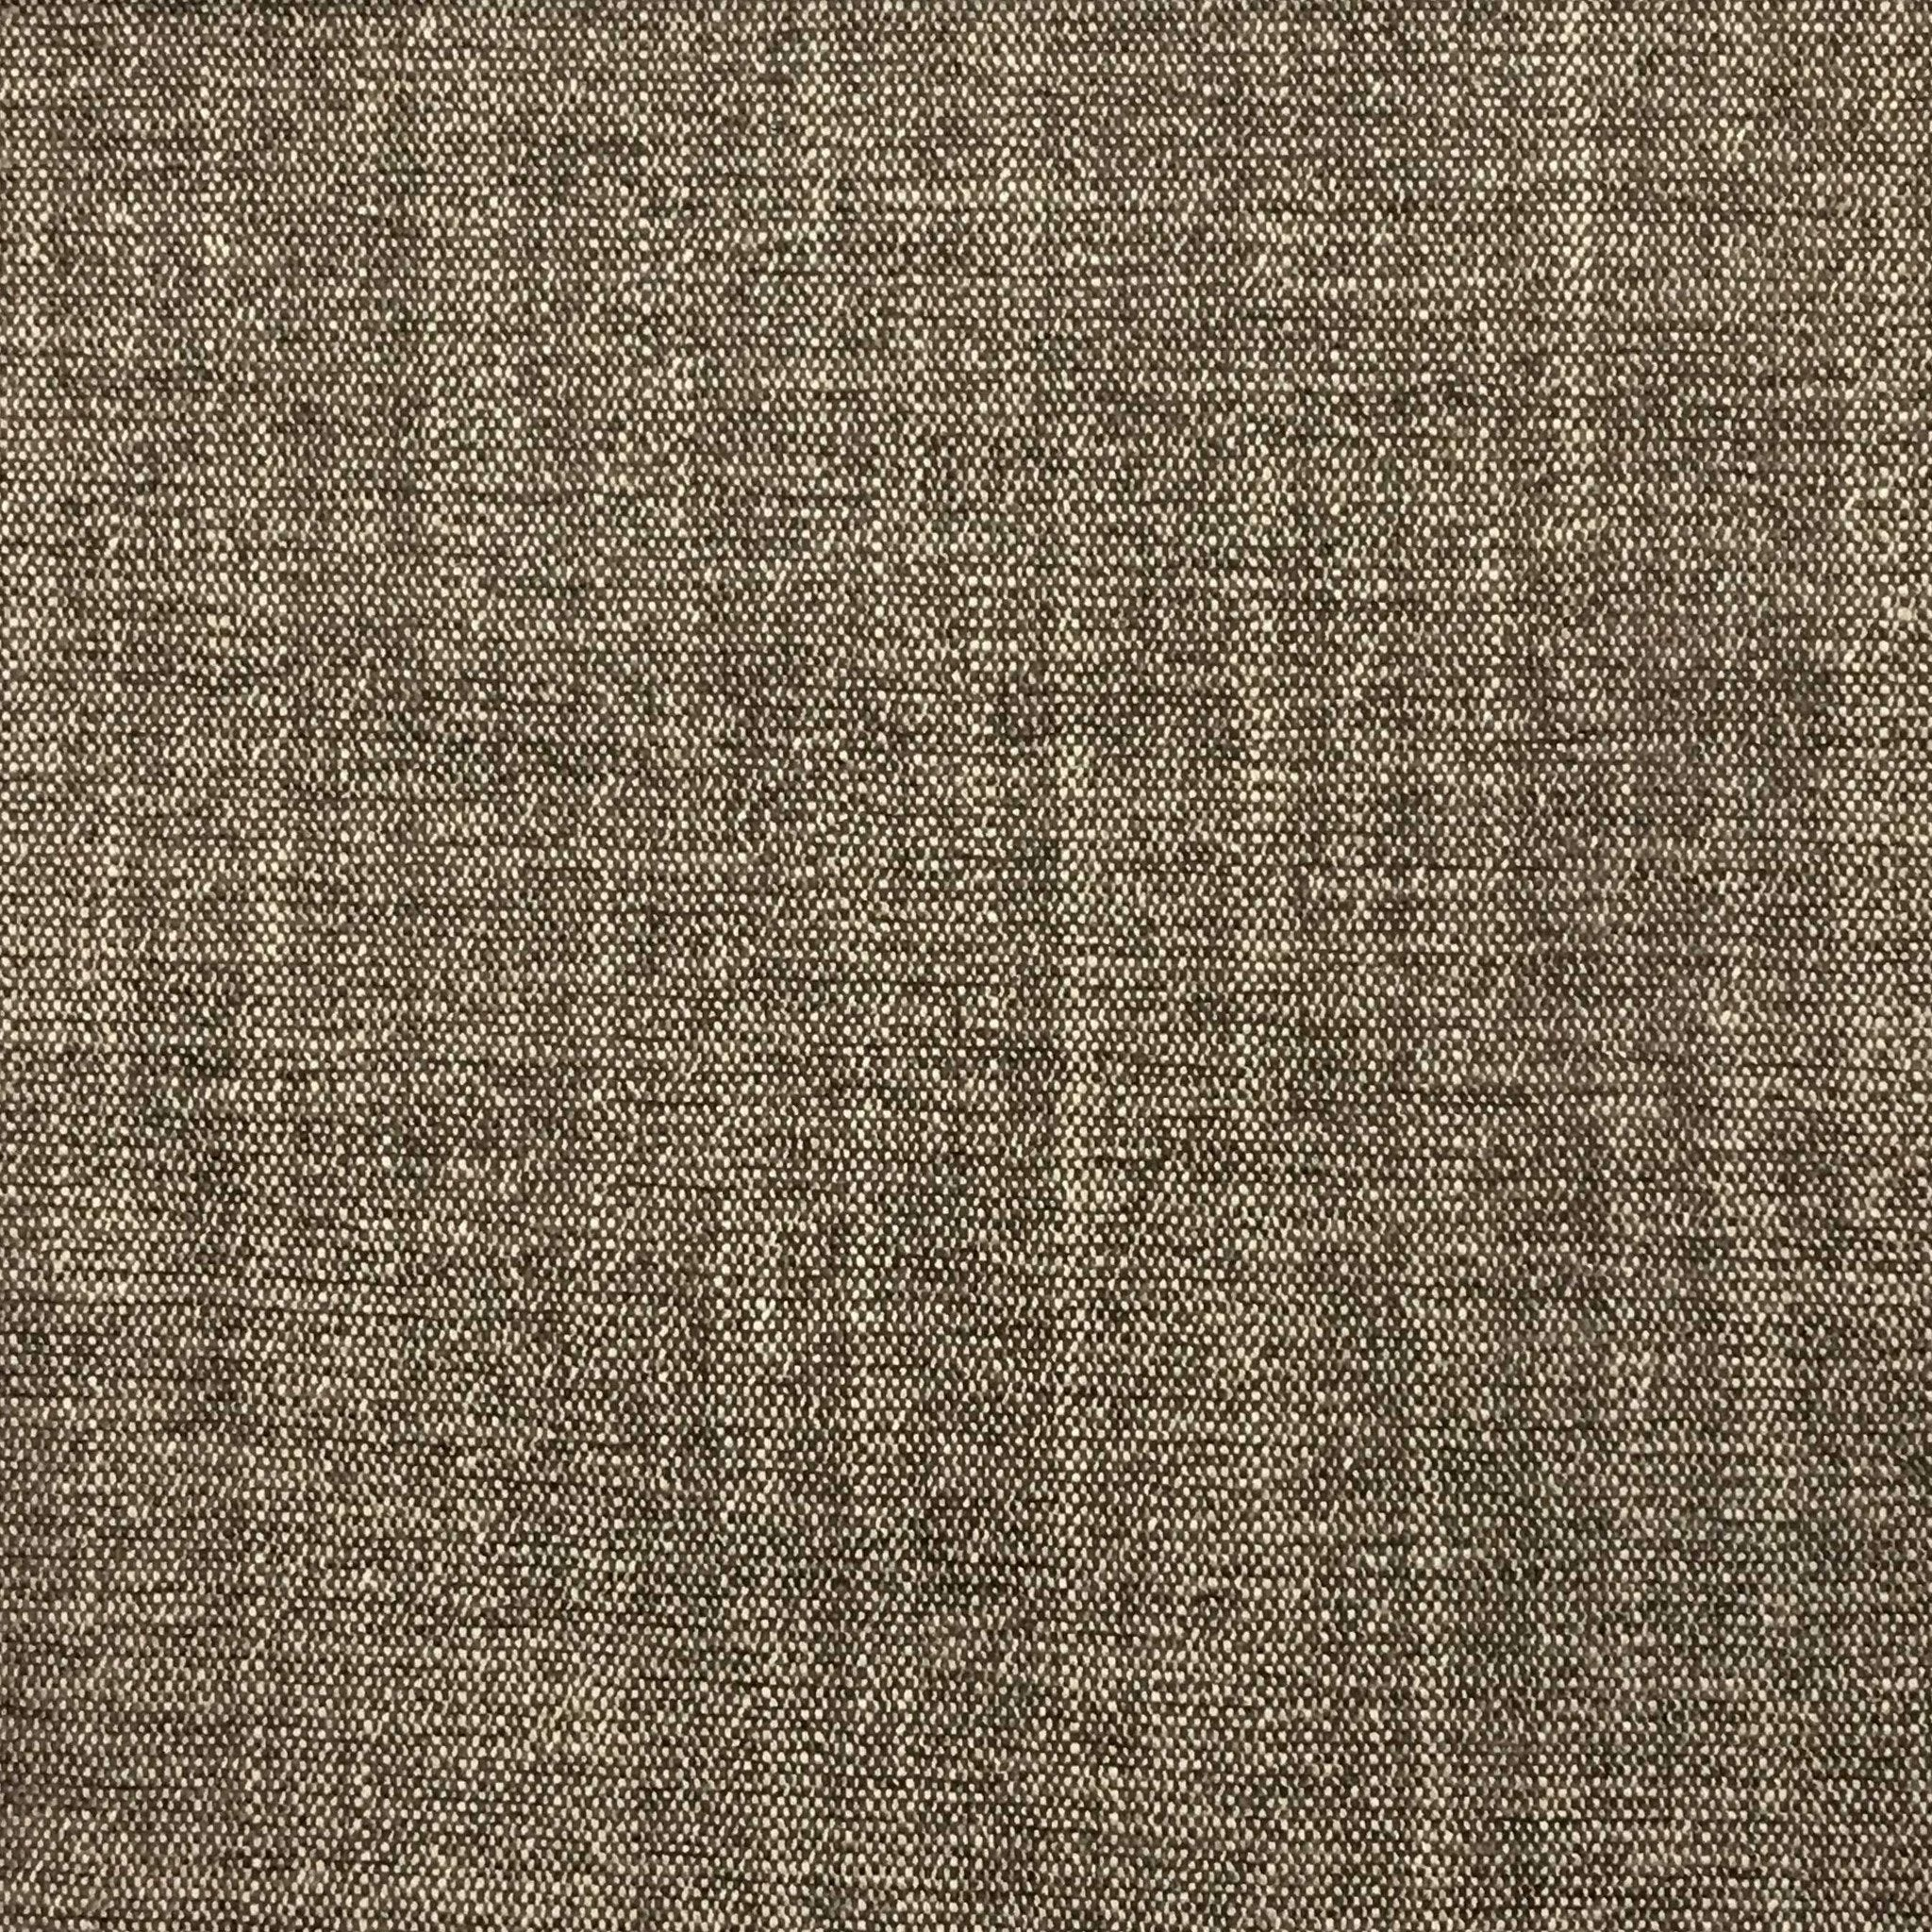 Suede Upholstery Fabric >> Bronson - Linen Blend Textured Chenille Upholstery Fabric by the Yard